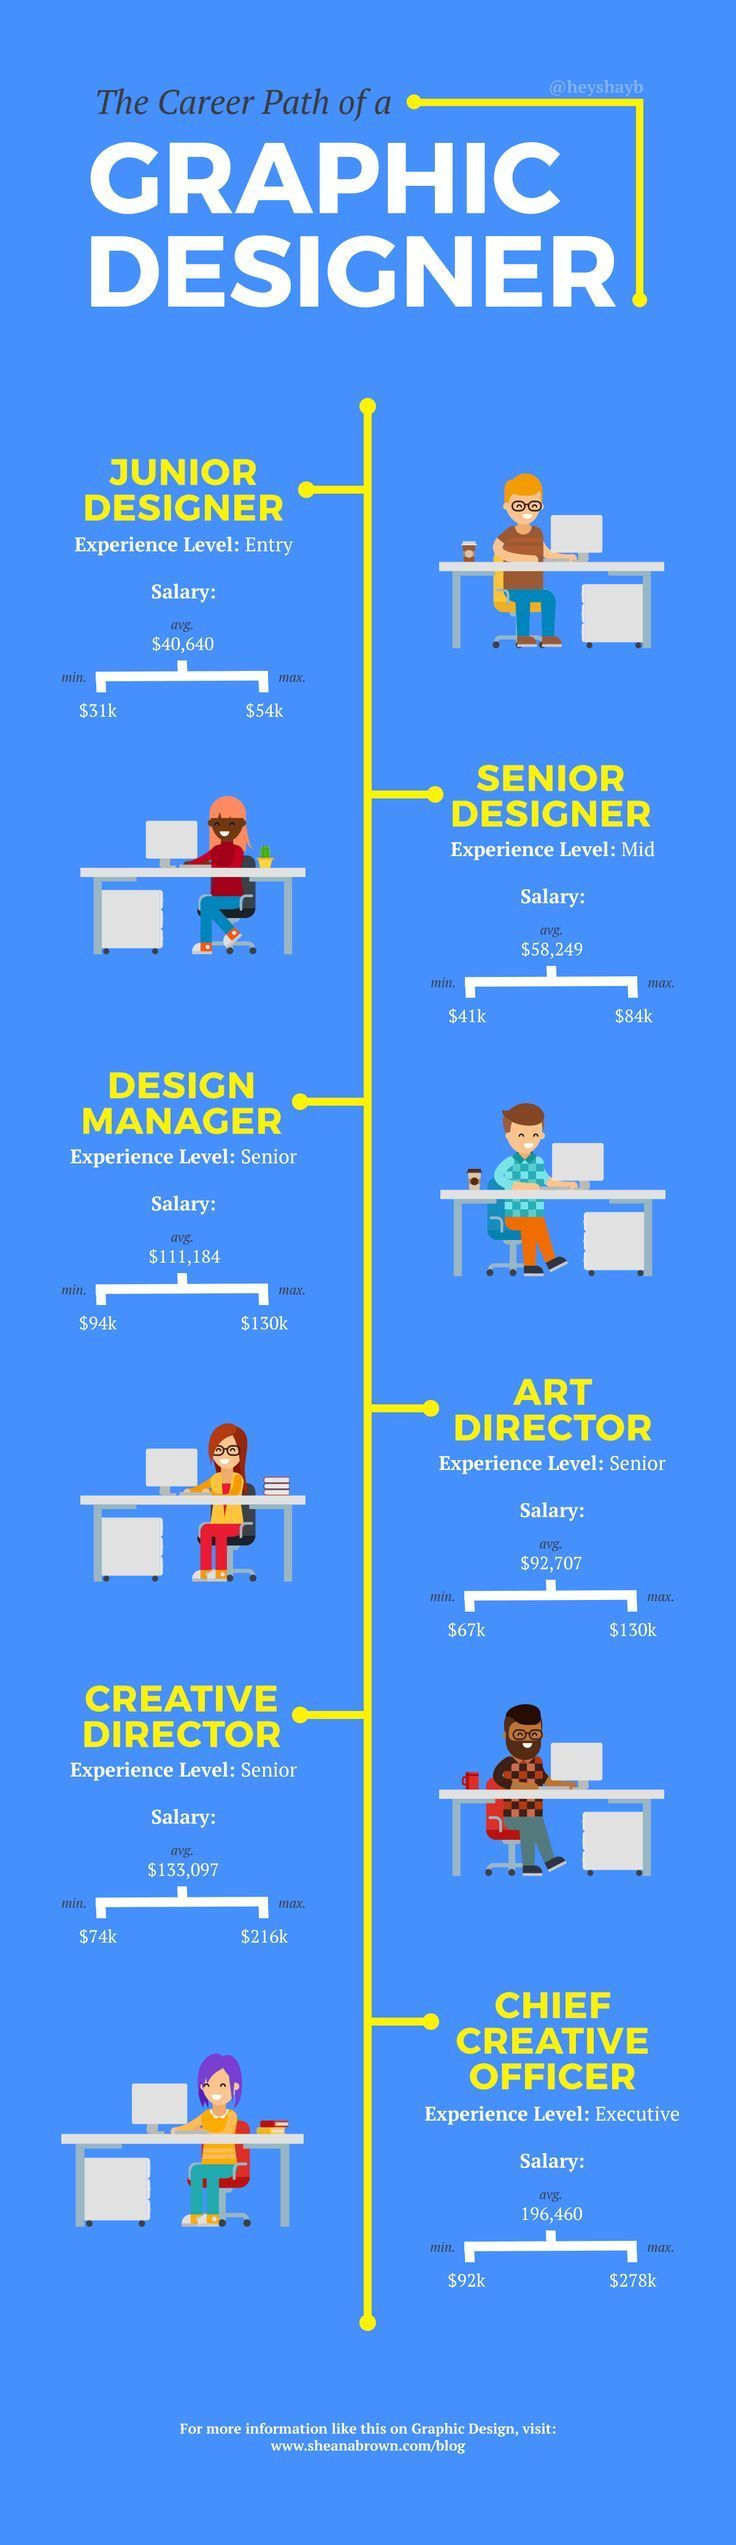 Infographic Design Deciding On A Graphic Design Career Path Sheanabrown Com Codesign Magazine Daily Updated Magazine Celebrating Creative Talent From Graphic Design Careers Graphic Design Tips Graphic Design Jobs